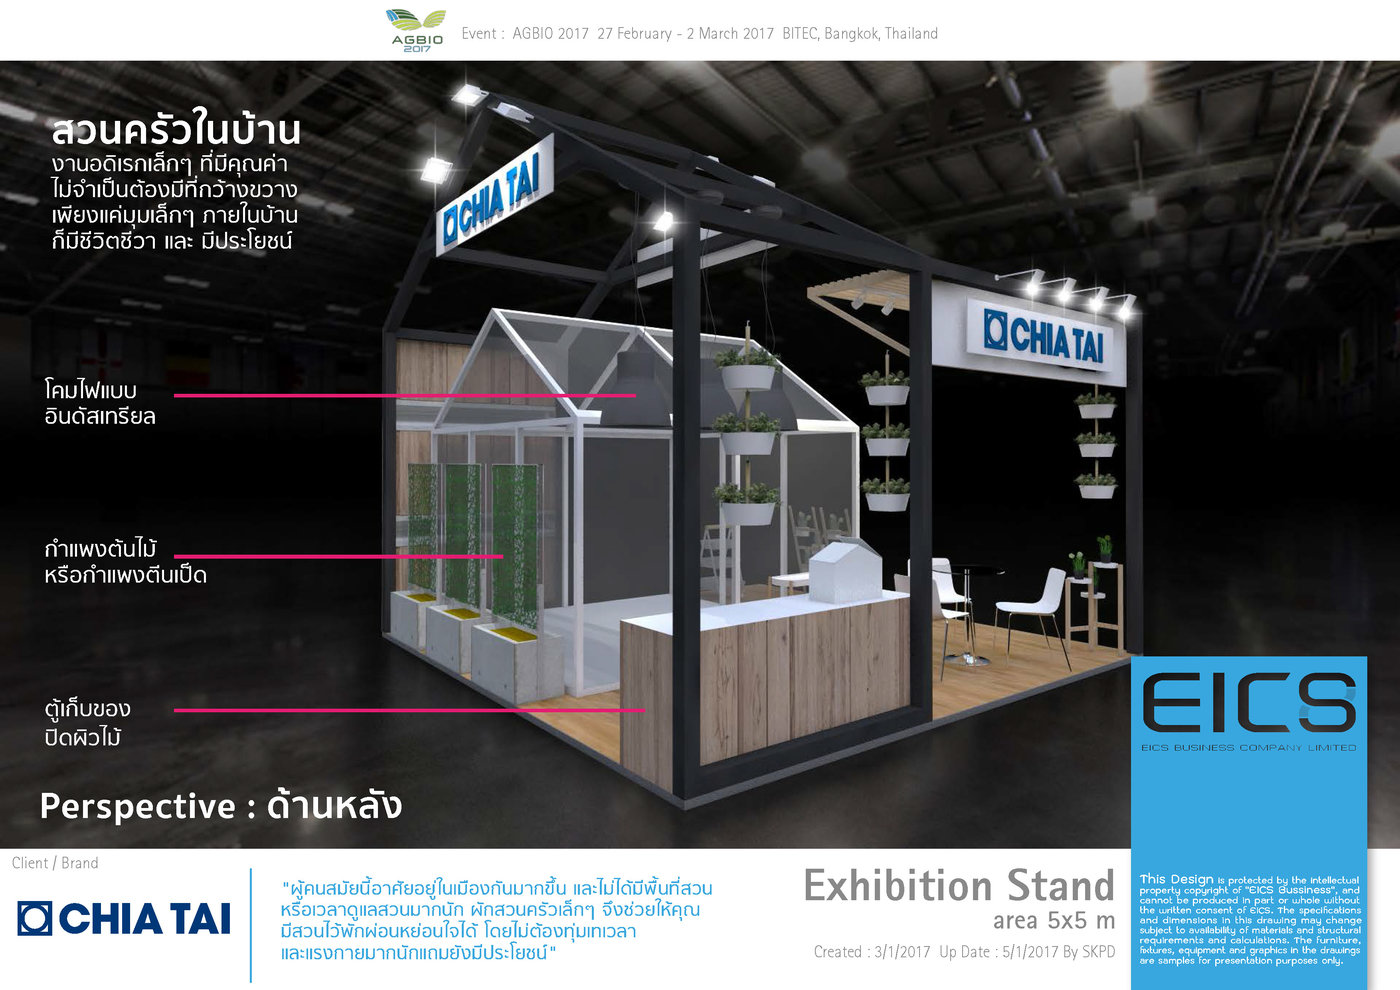 Exhibition Stand Dimensions : Exhibition booth chaitai by sathaporn kaewpleng at coroflot